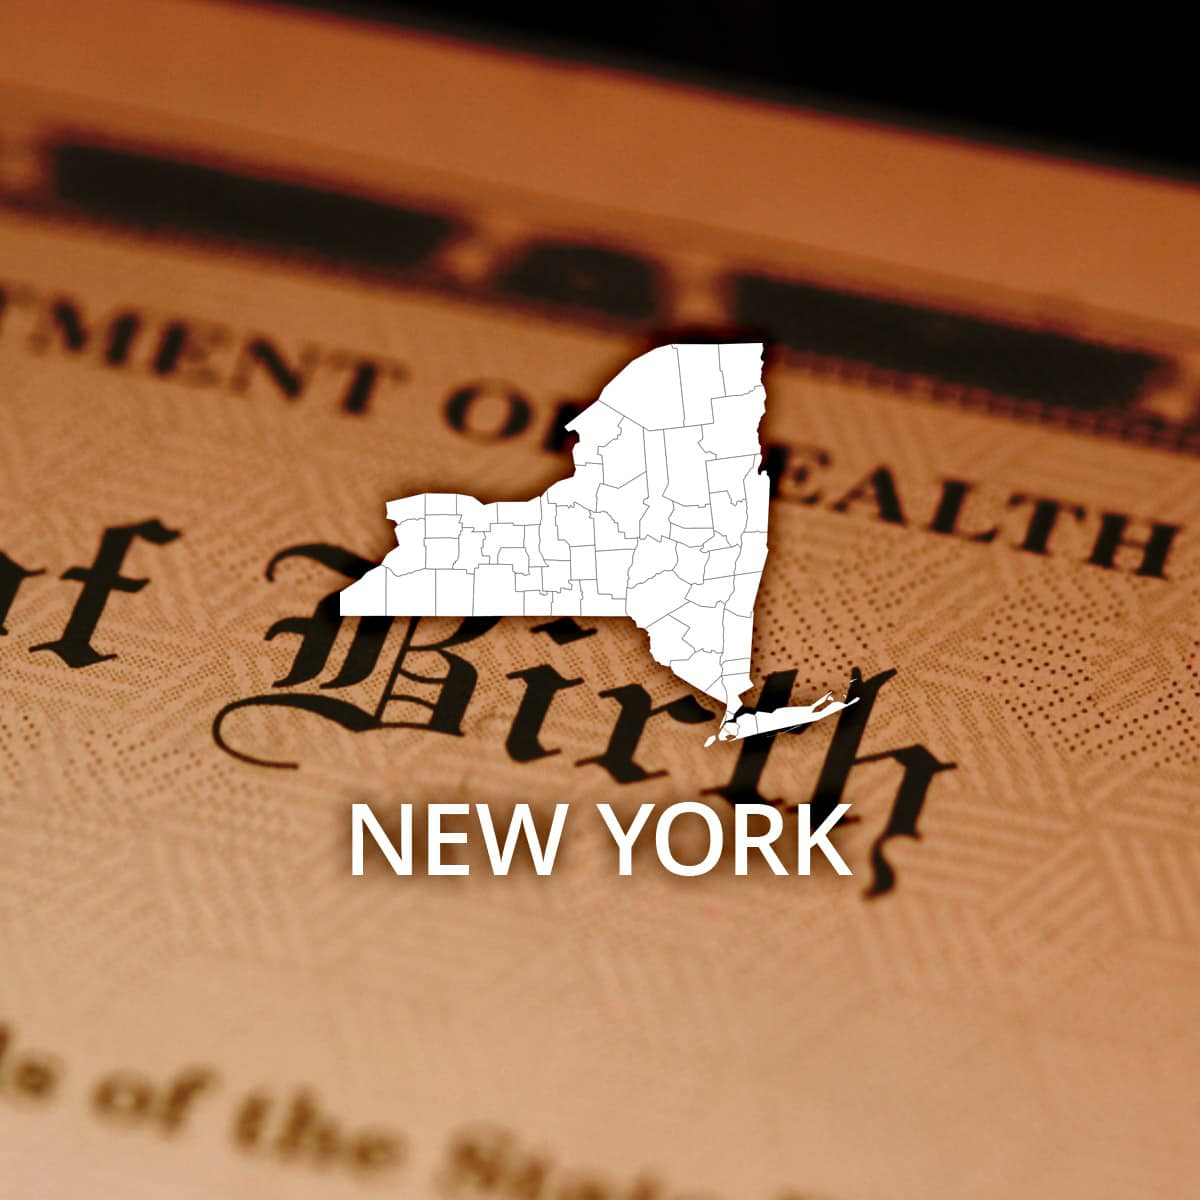 Where to Obtain a New York Birth Certificate